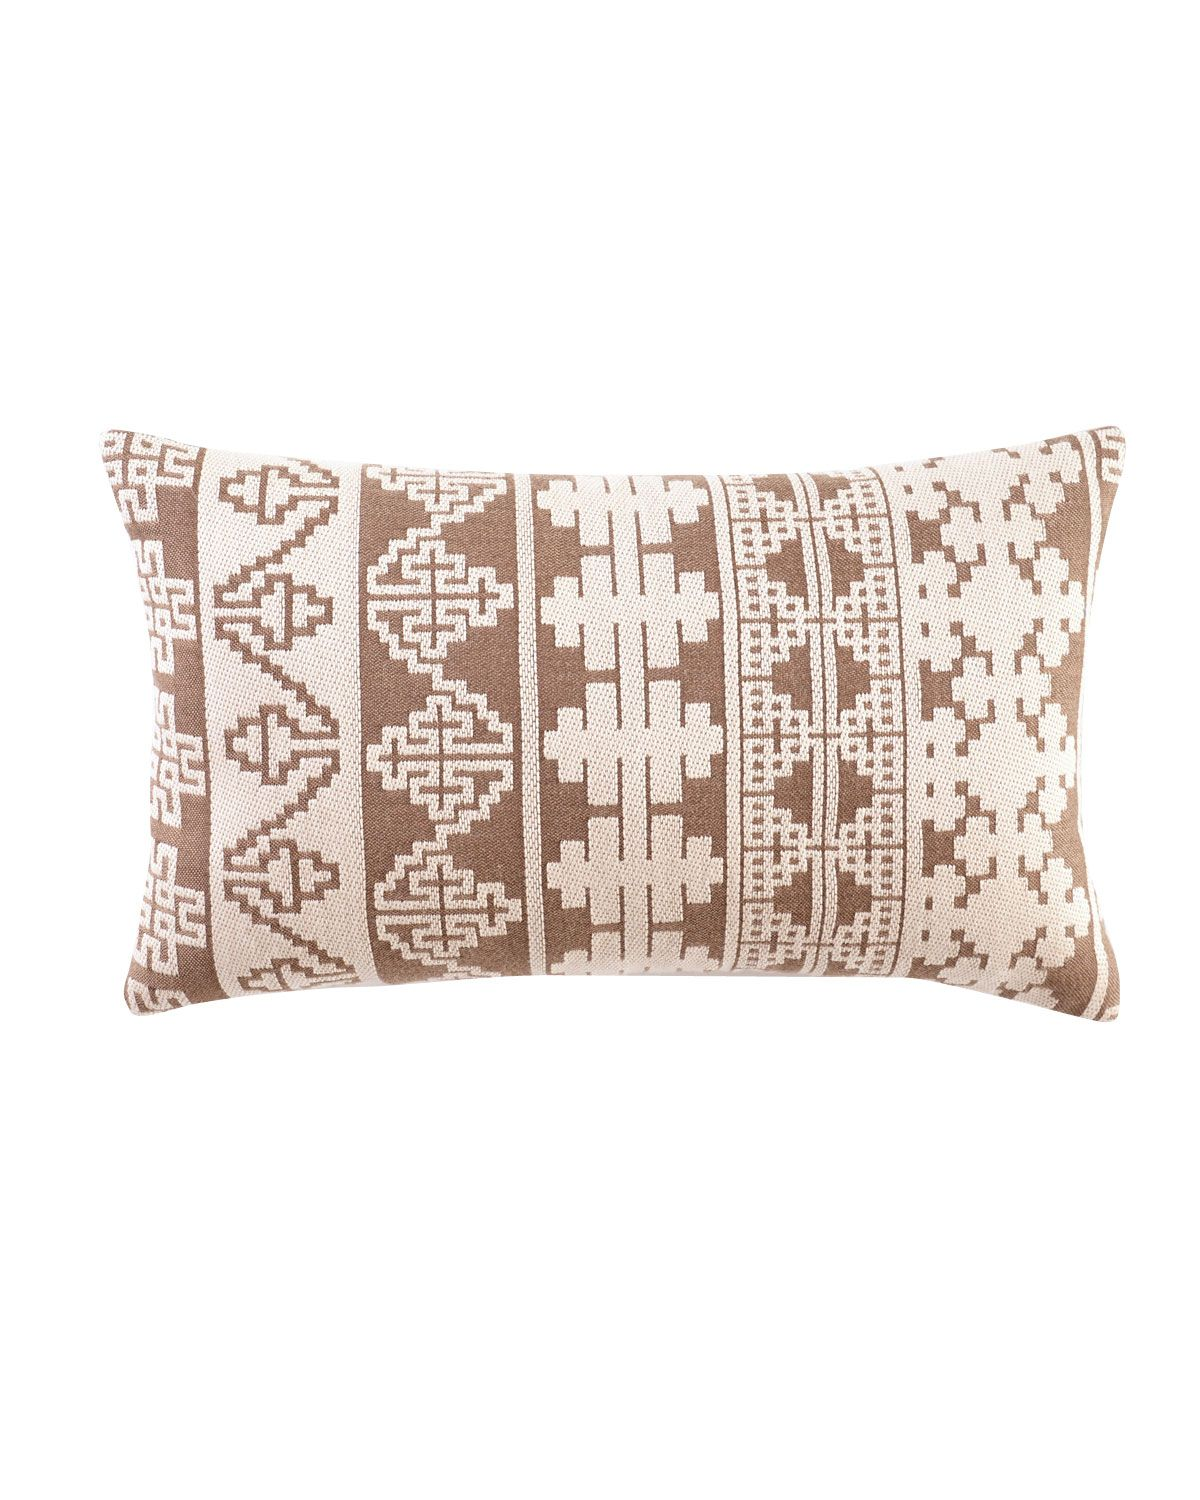 ELAINE SMITH Global Blue, Tan, U0026 Brown Outdoor Pillows   Horchow